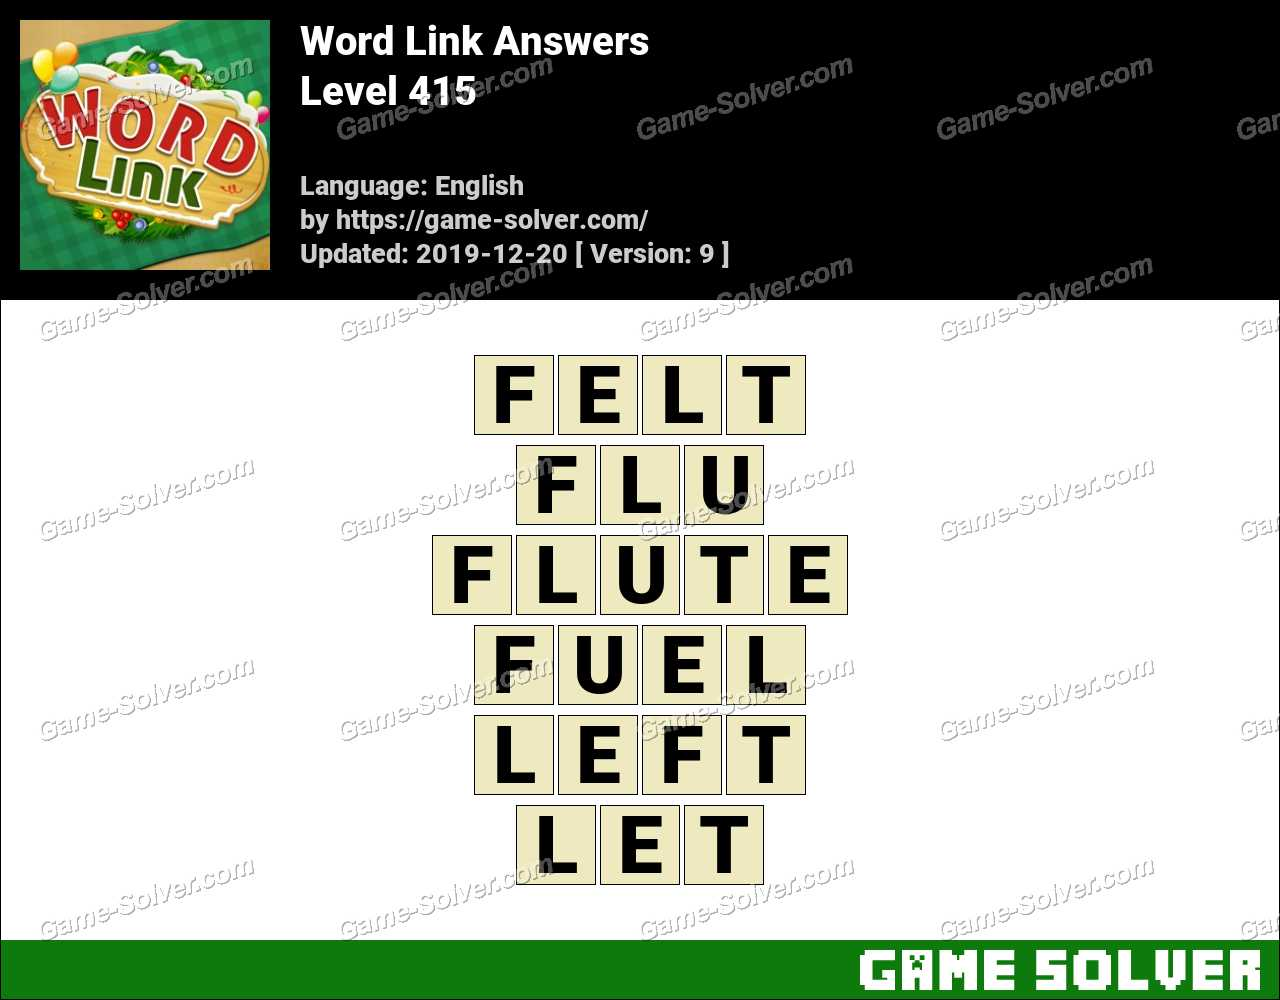 Word Link Level 415 Answers